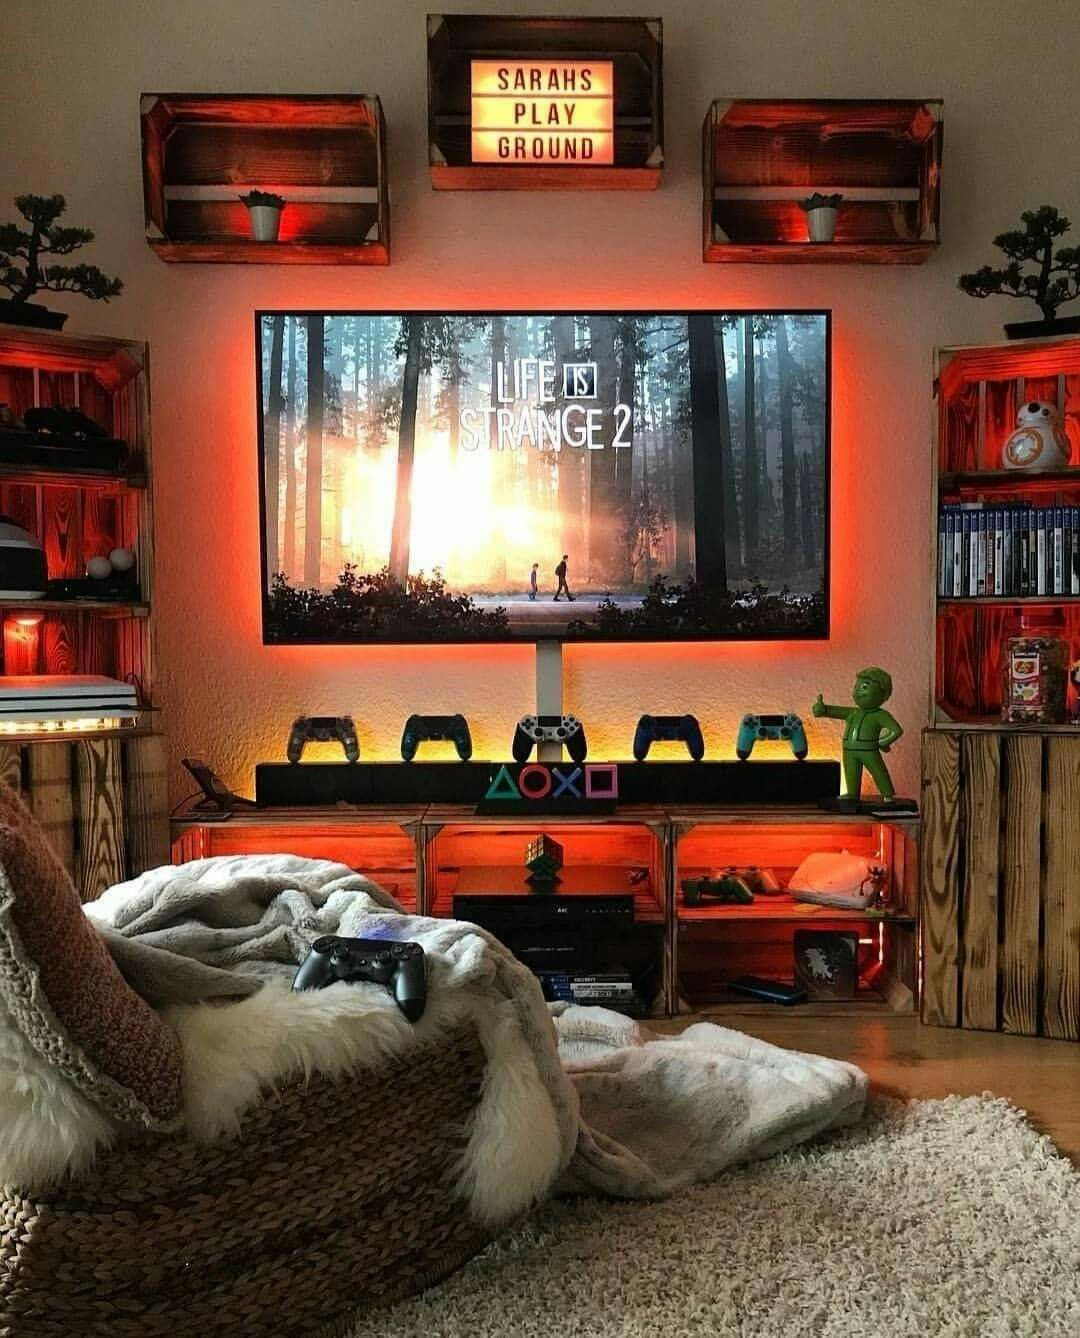 Sarah S Play Ground Video Game Room Design Video Game Room